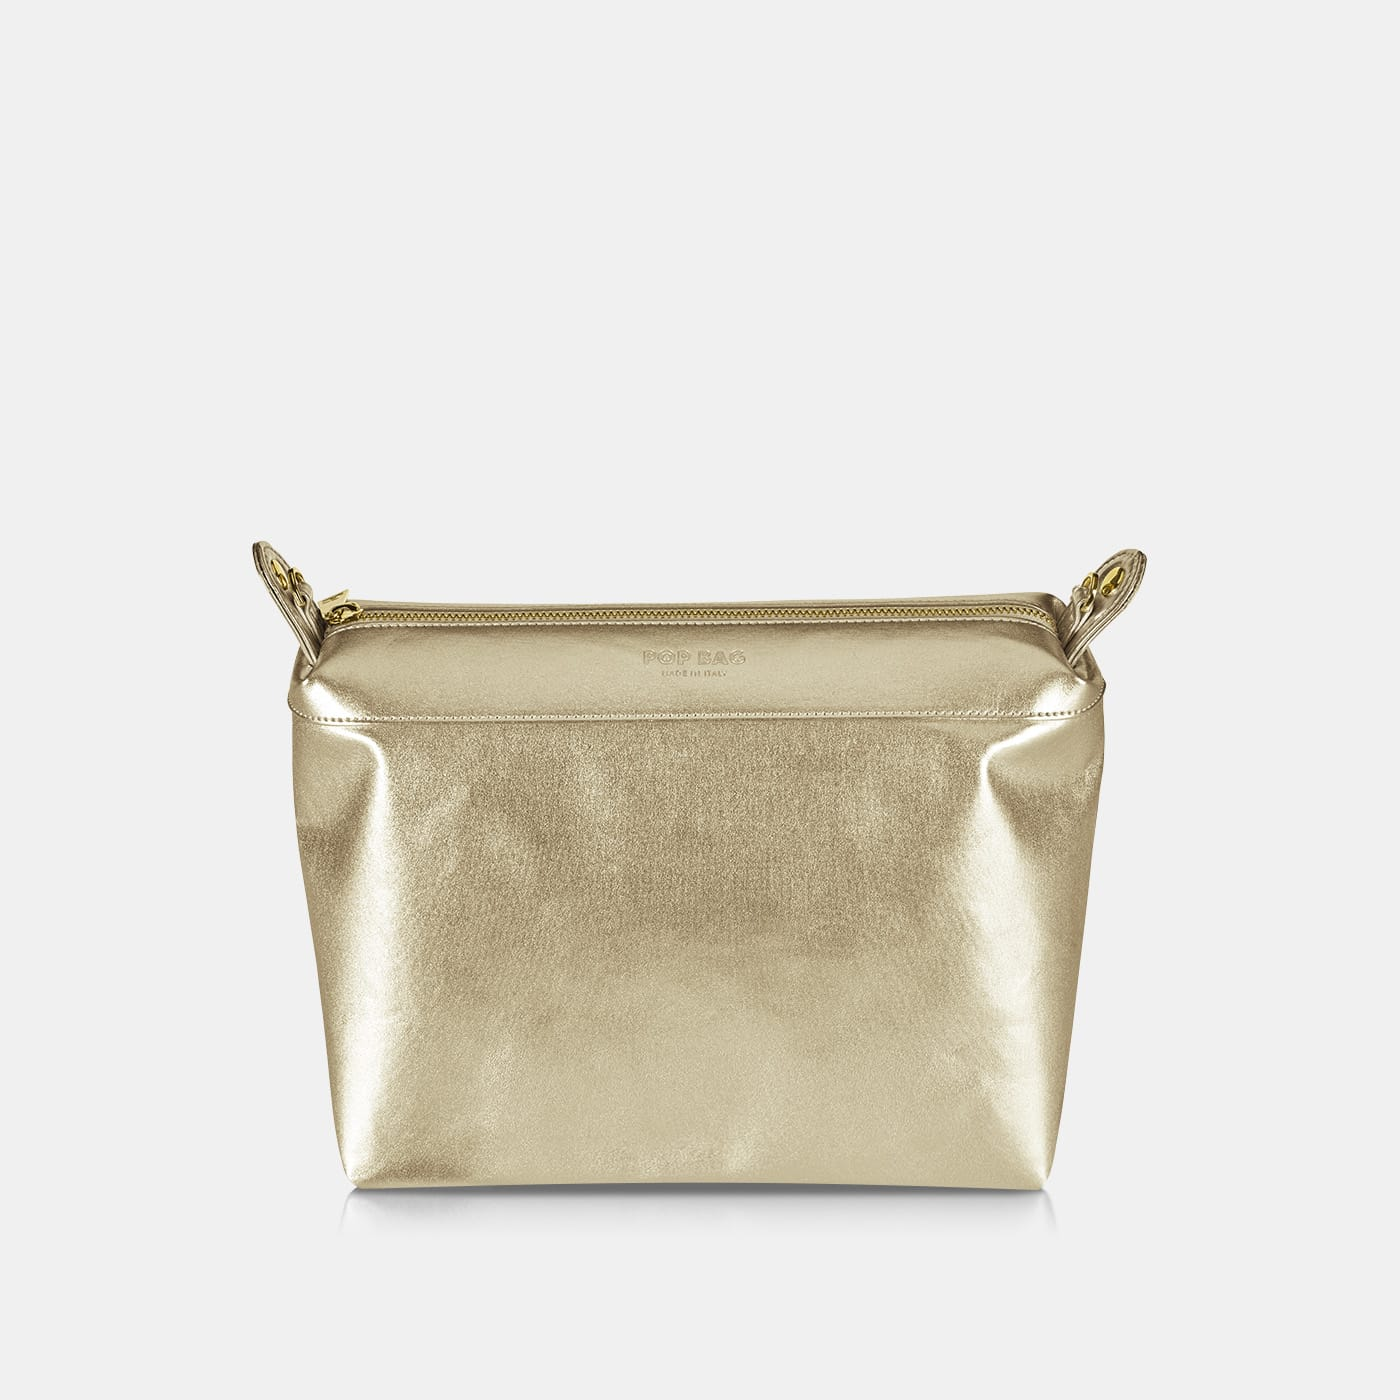 Bag In Bag - Metallic - Platinum Metal - Medium